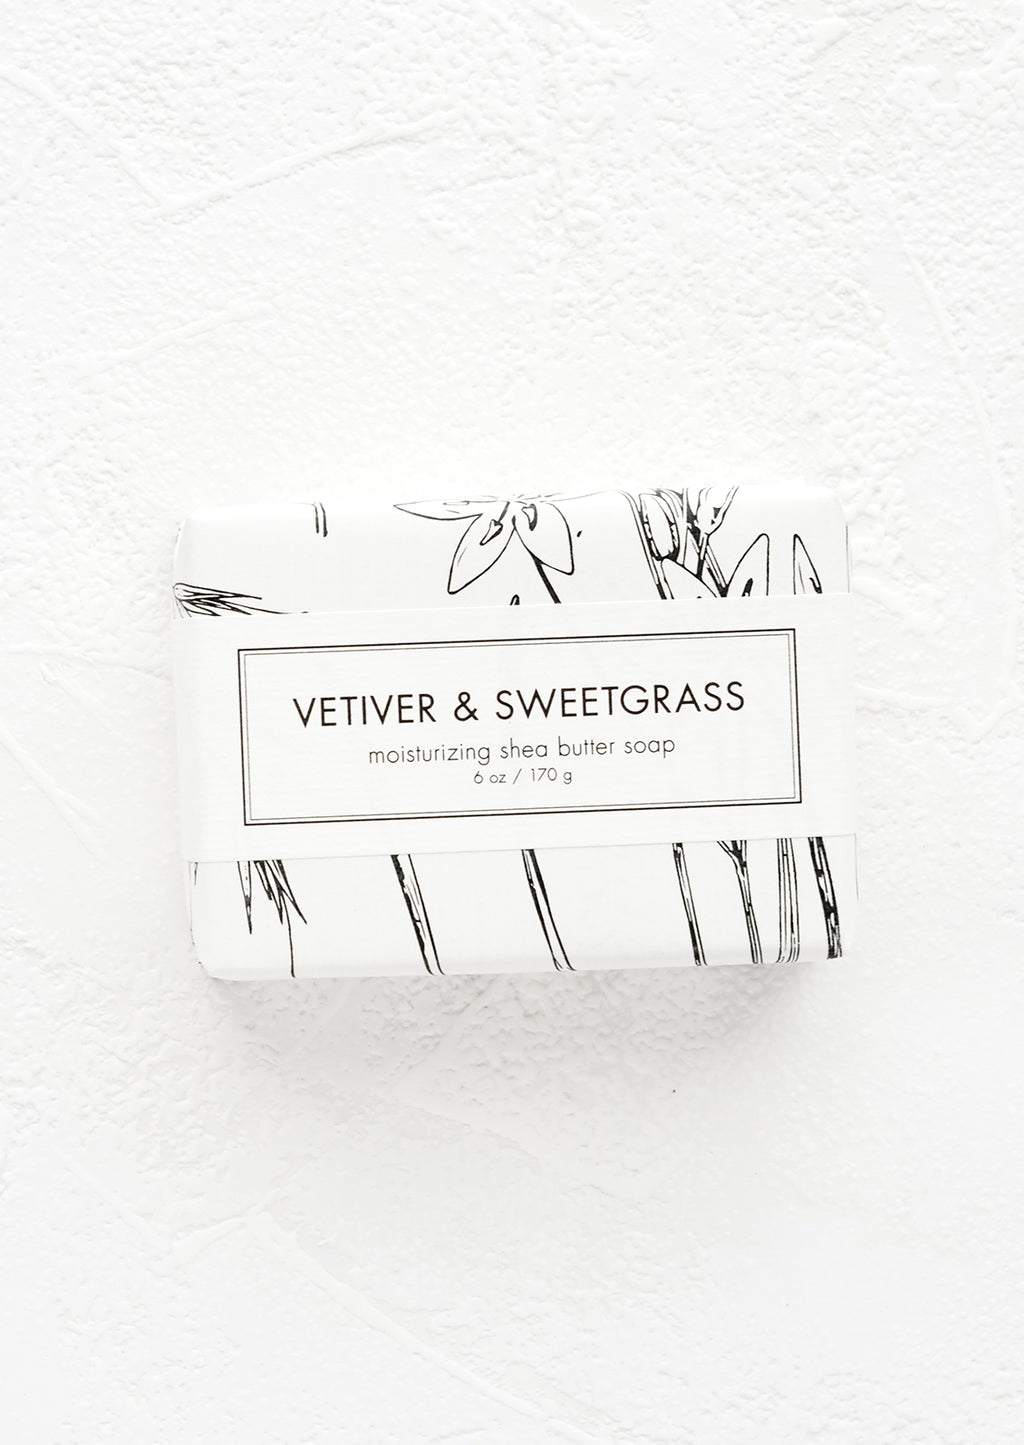 Vetiver & Sweetgrass: A bar of soap in black & white botanical graphic packaging.